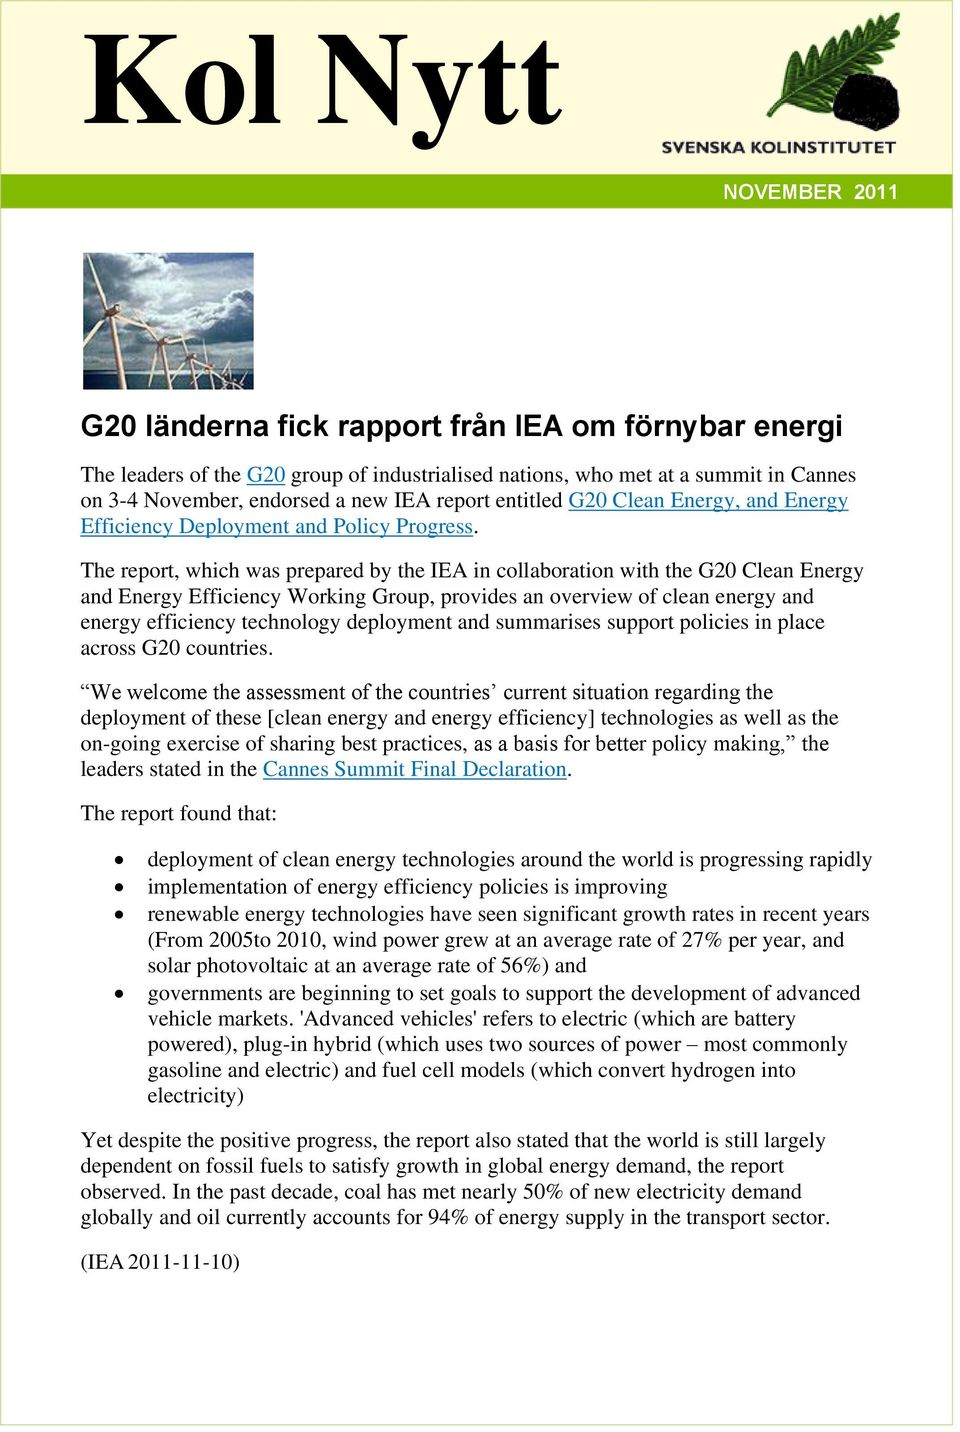 The report, which was prepared by the IEA in collaboration with the G20 Clean Energy and Energy Efficiency Working Group, provides an overview of clean energy and energy efficiency technology